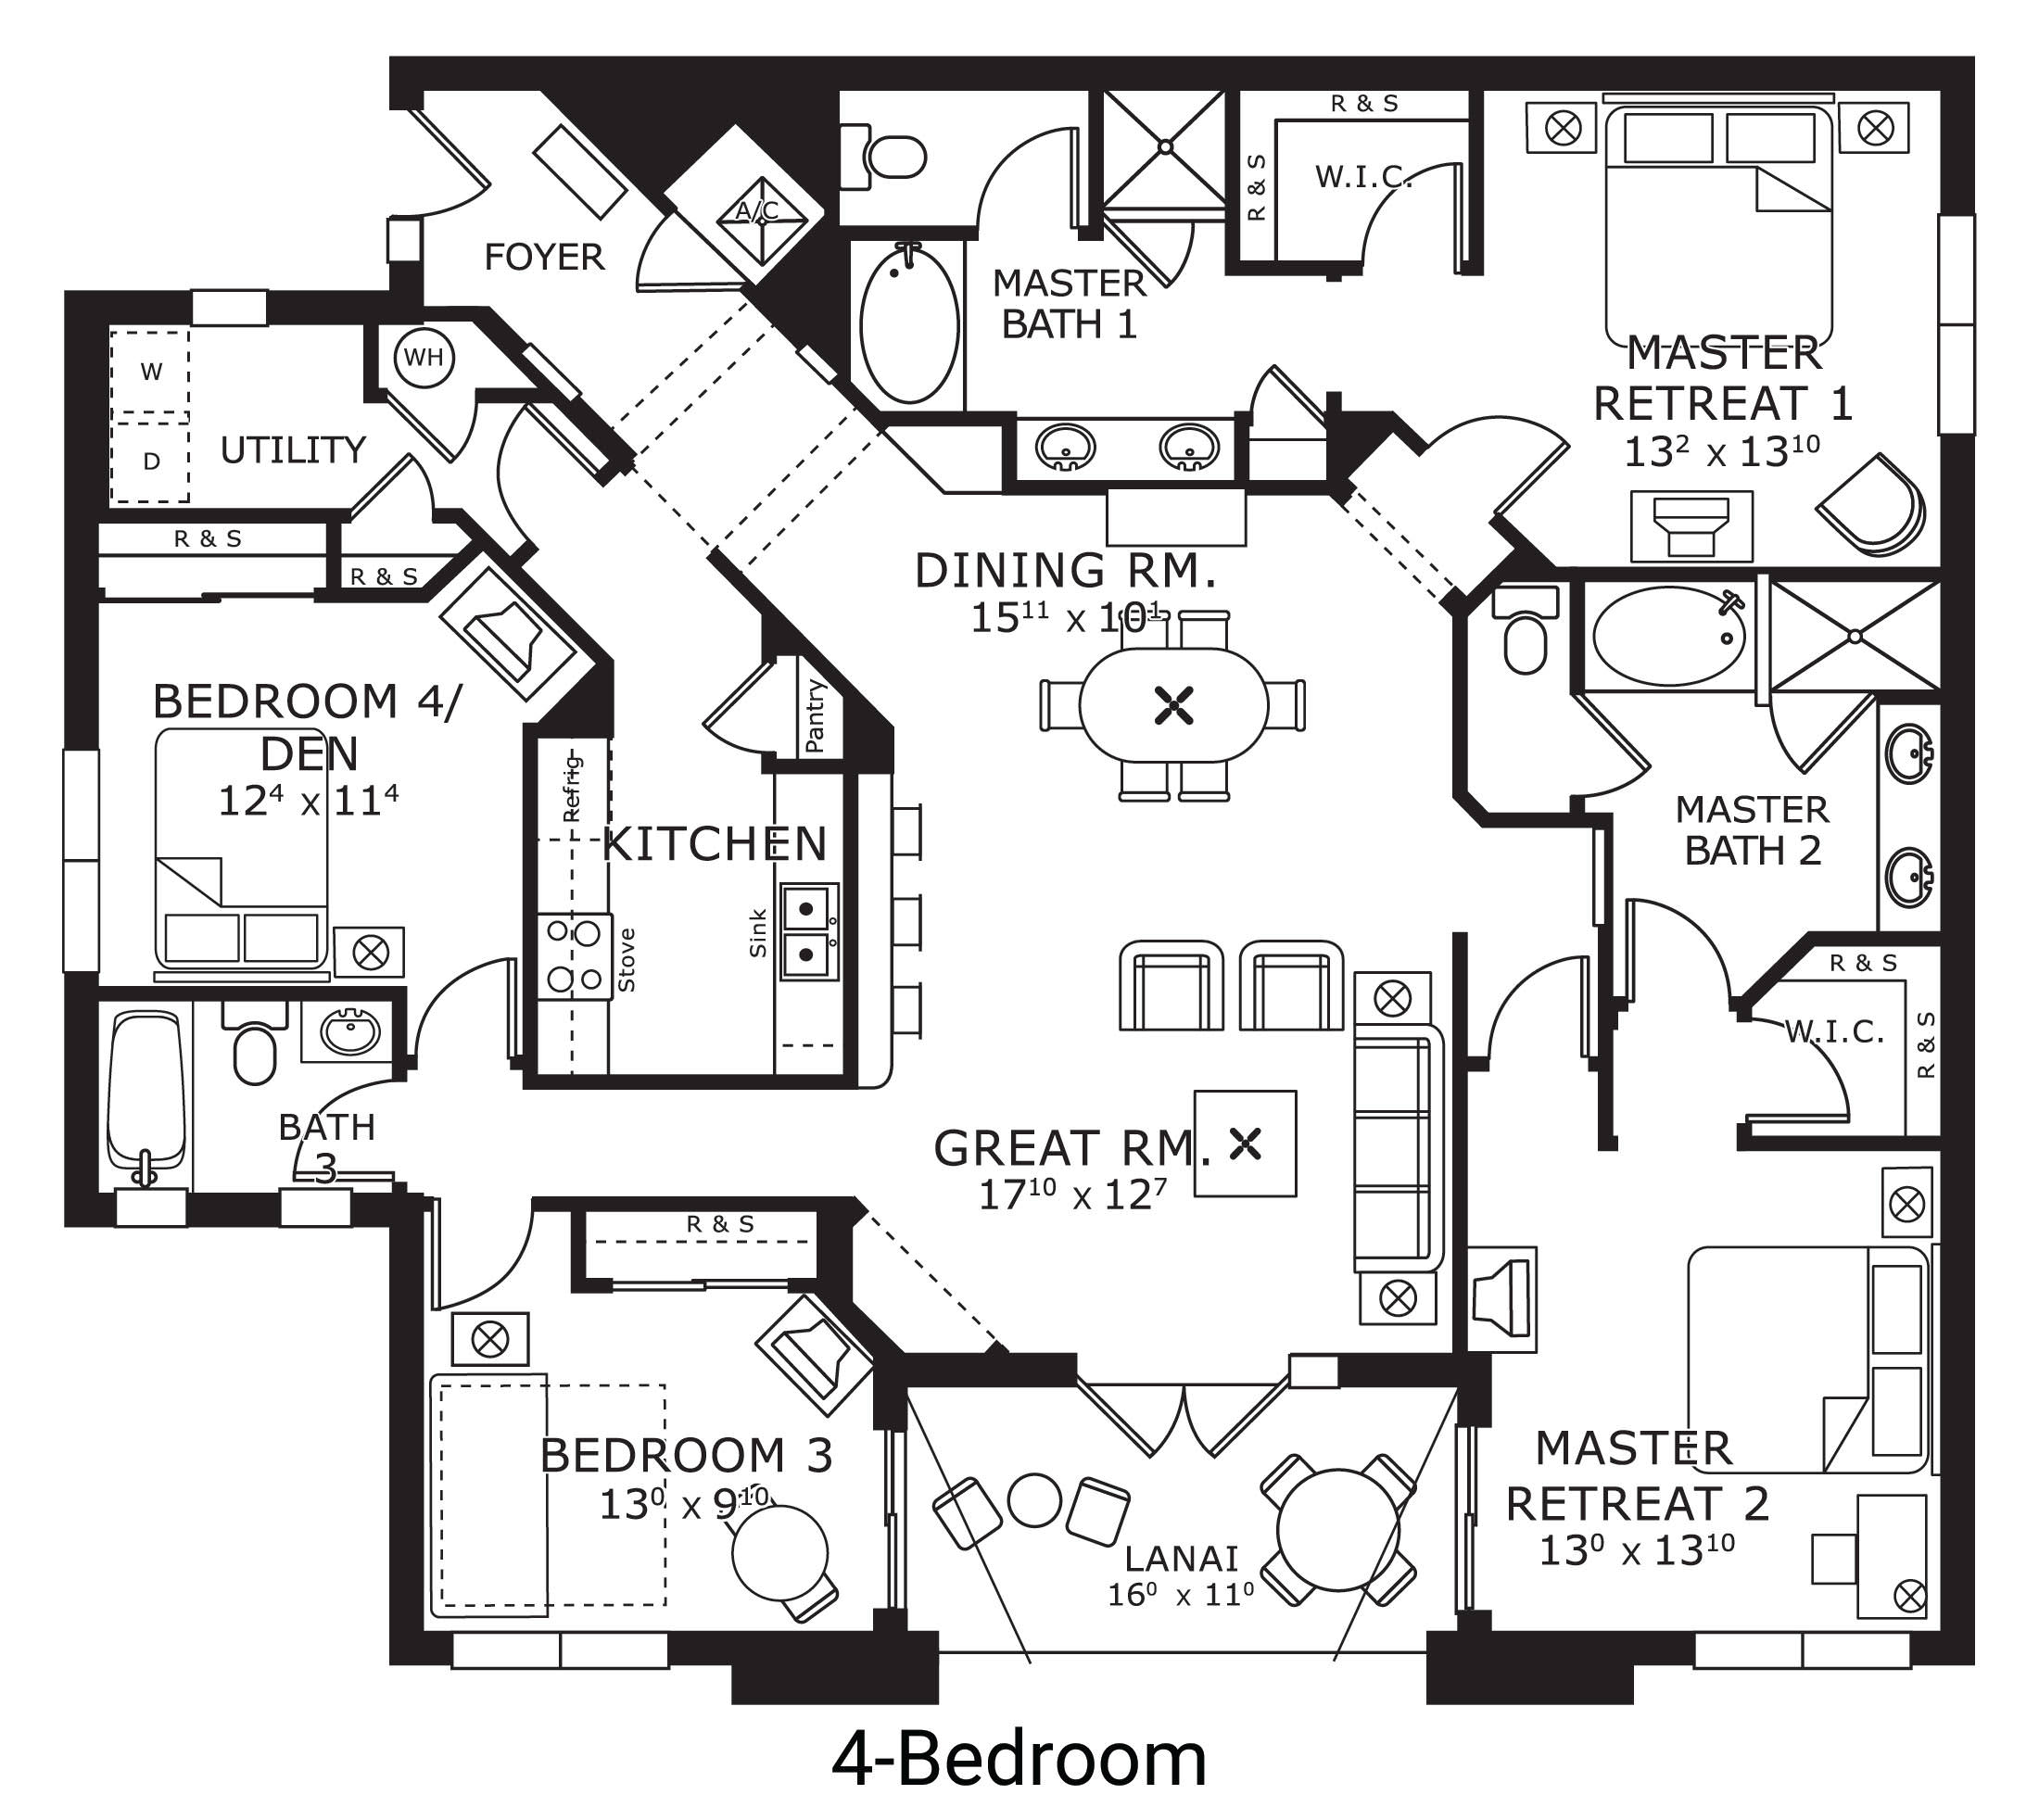 floor plan map for four bedroom, The Berkley, Orlando